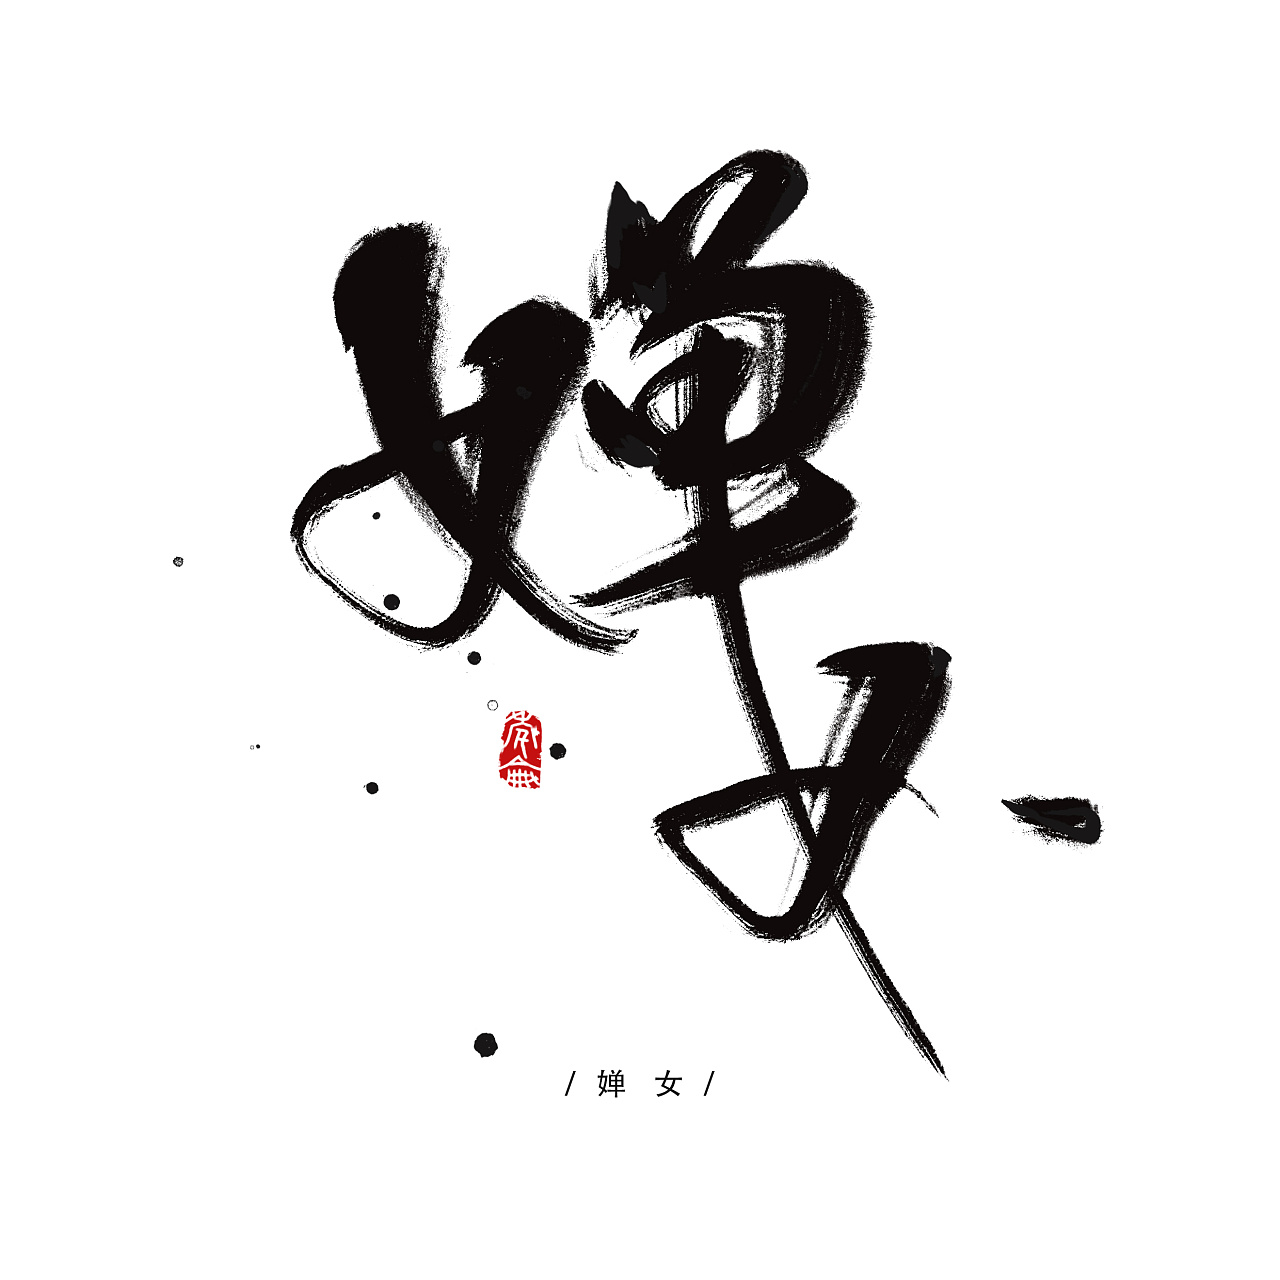 chinesefontdesign.com 2017 09 12 05 58 43 103353 16P Chinese traditional calligraphy brush calligraphy style appreciation #.21